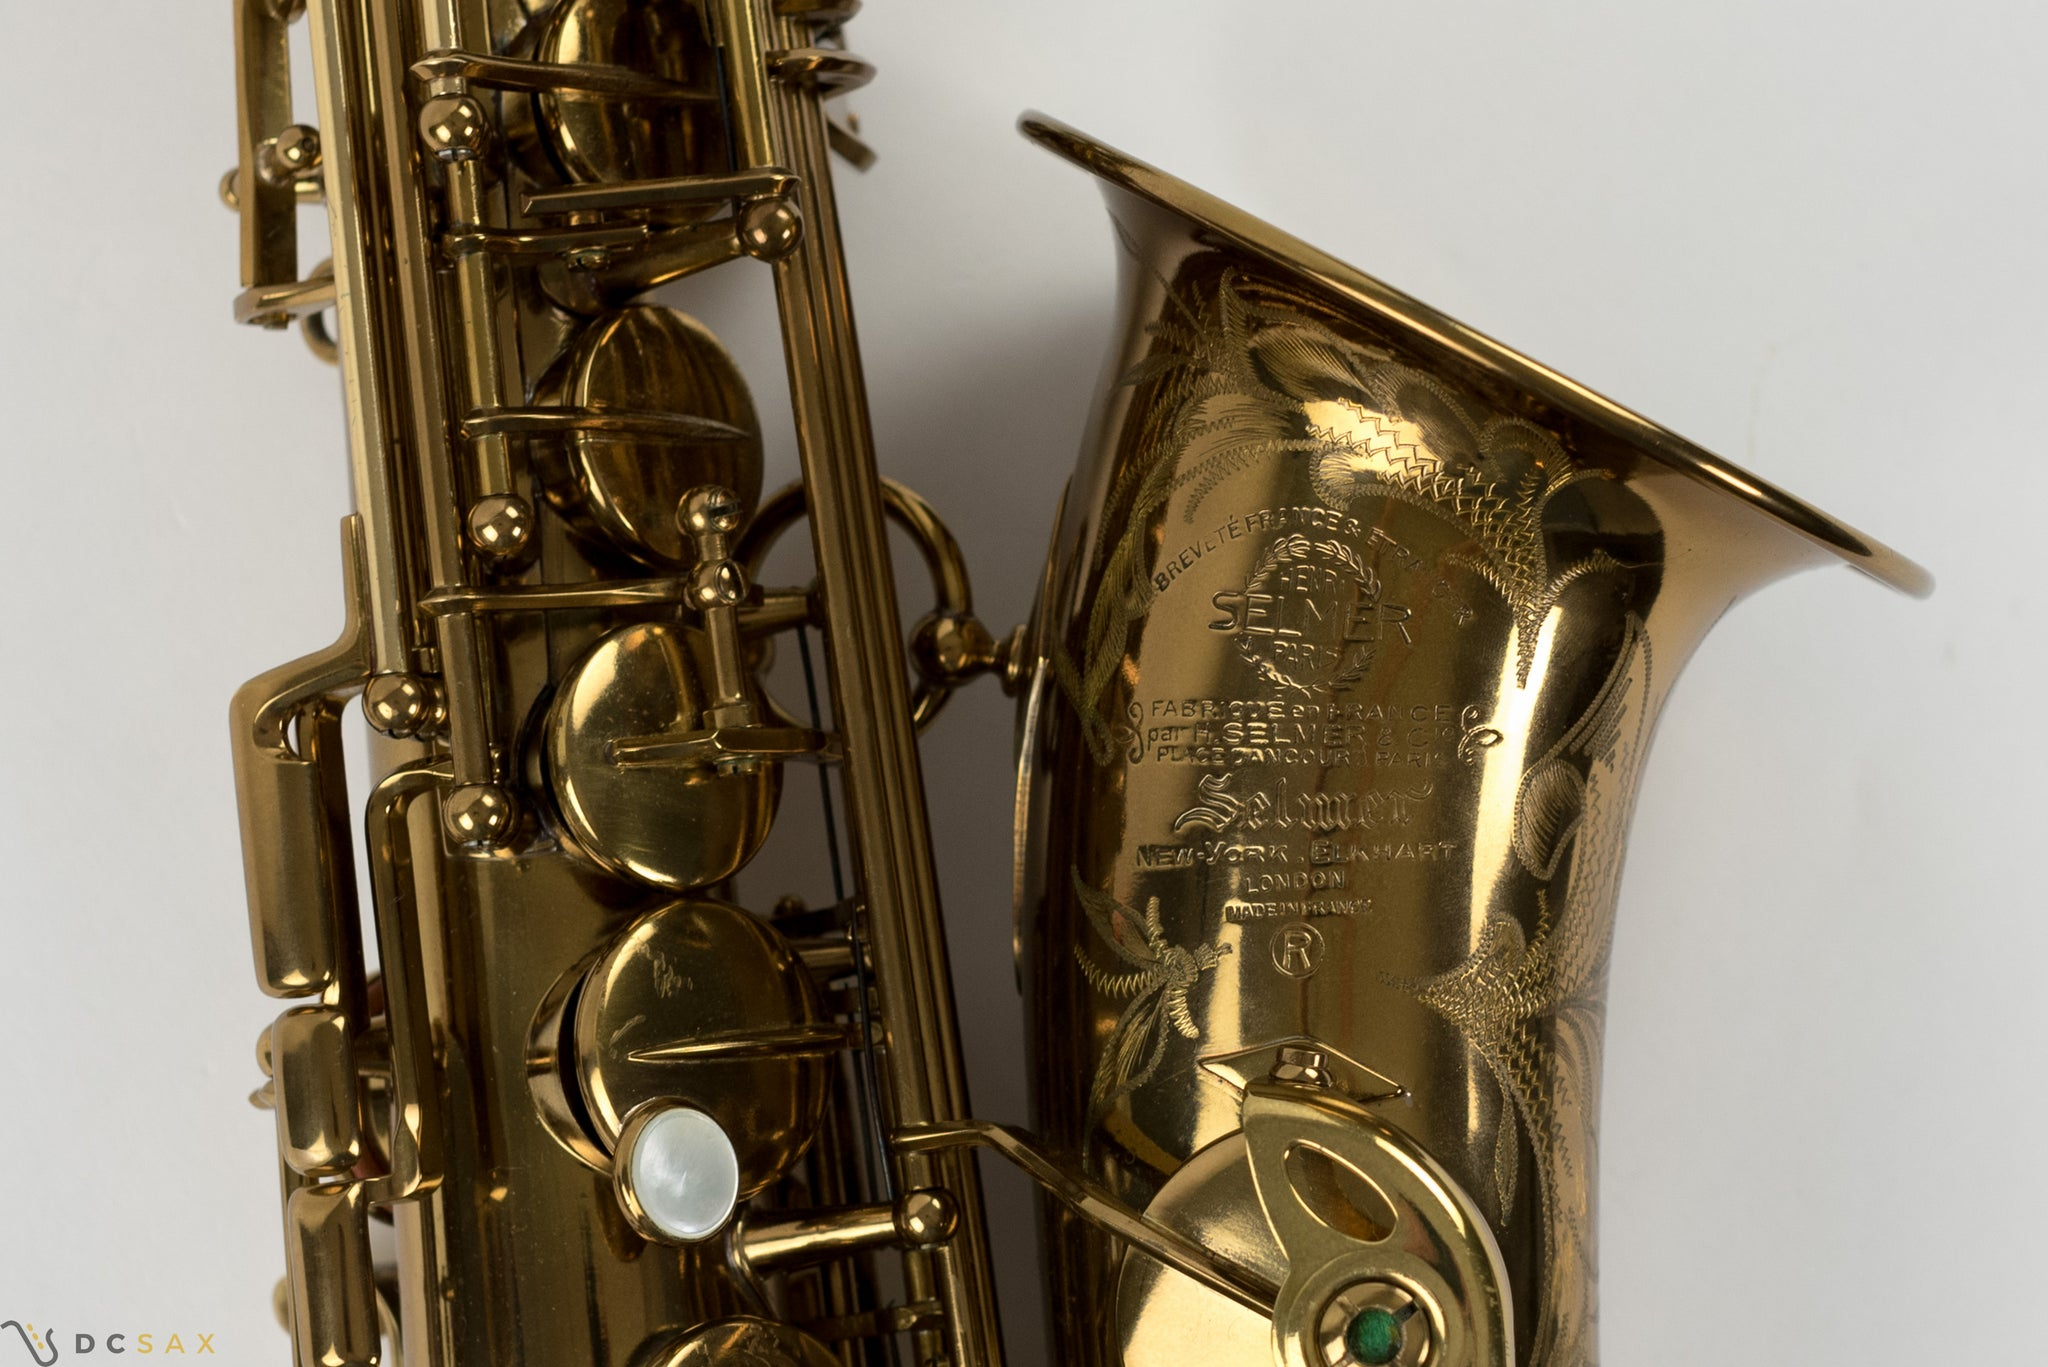 1956 65,xxx Selmer Mark VI Alto Saxophone, Mint Condition, 99.9% Original Lacuqer, Overhaul